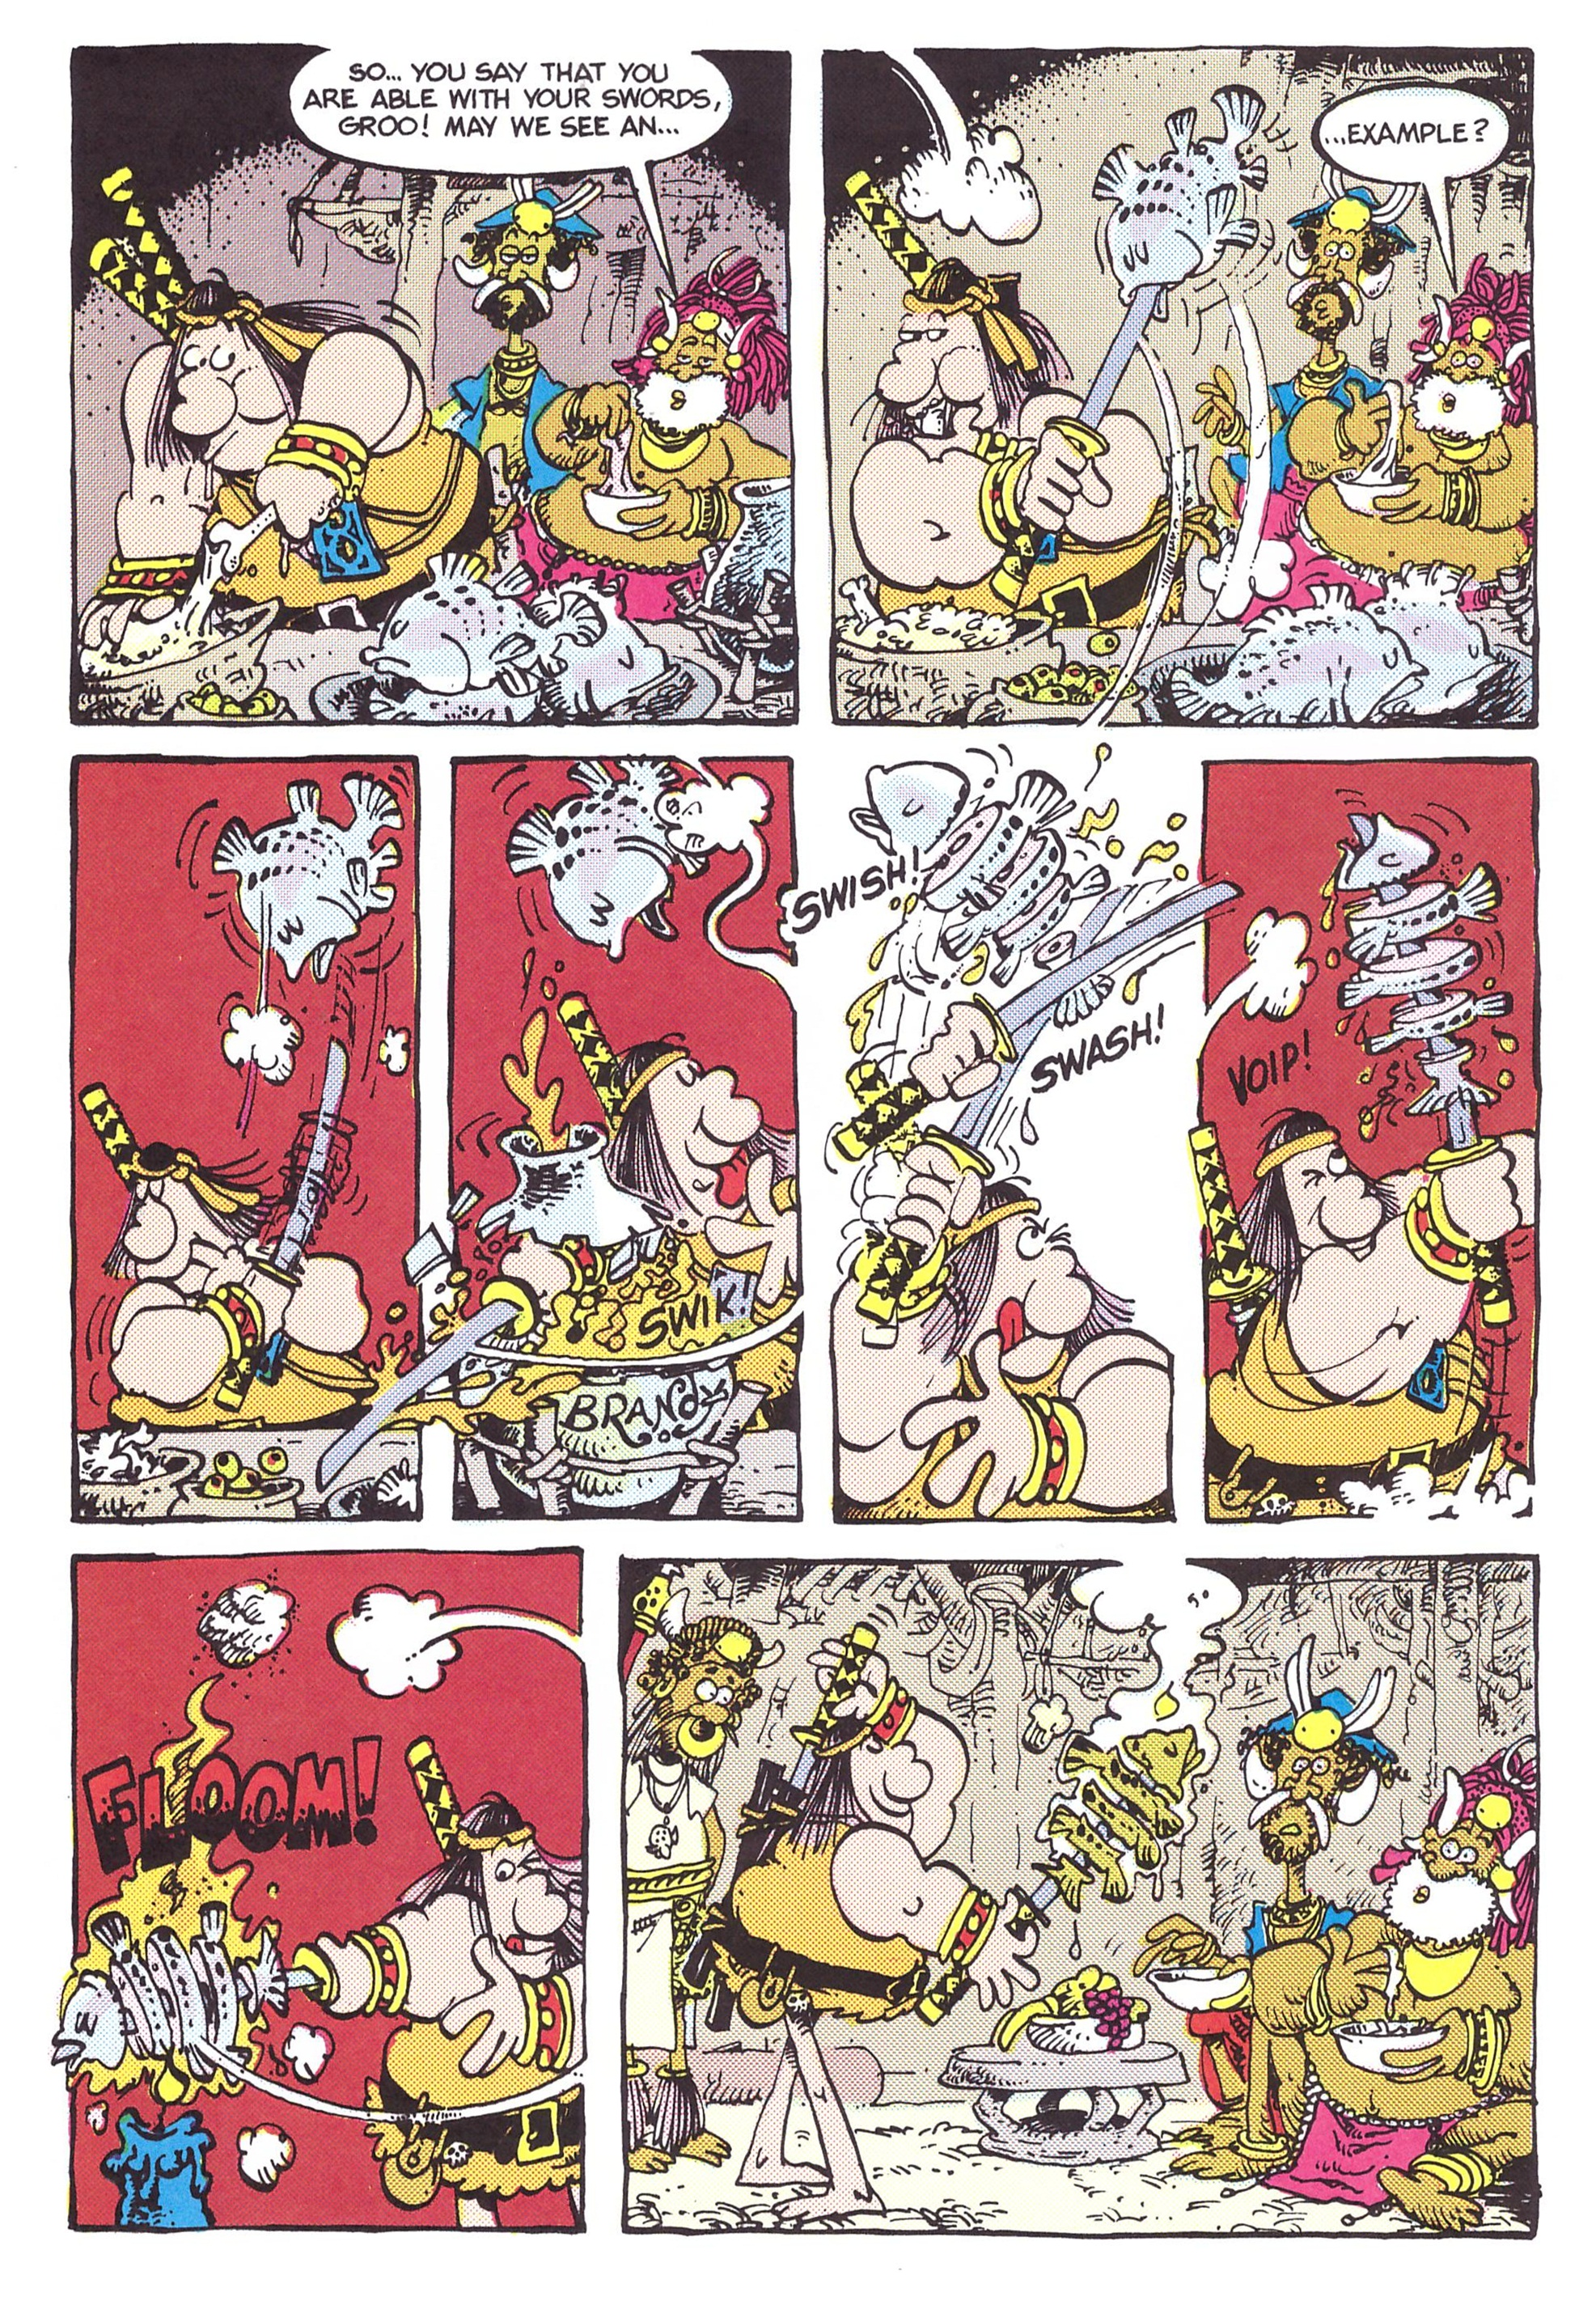 The Groo Expose review